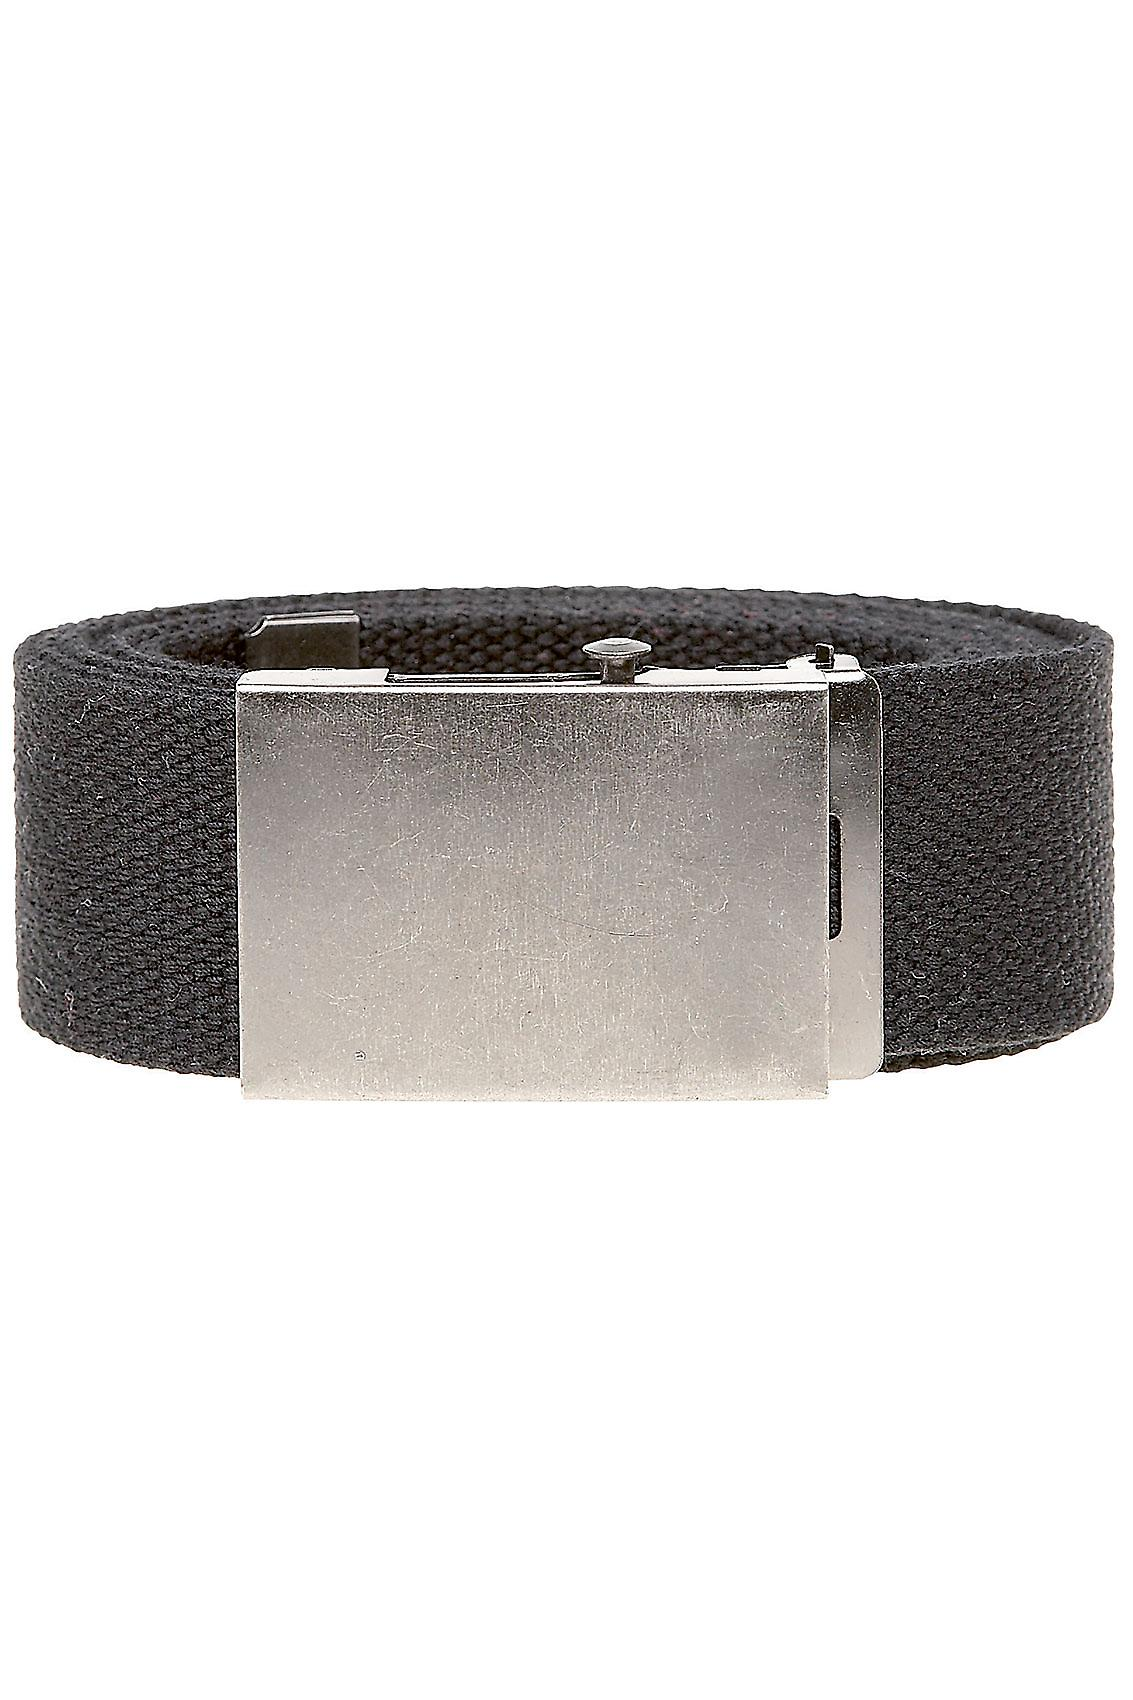 D555 King Size Black Webbing Belt